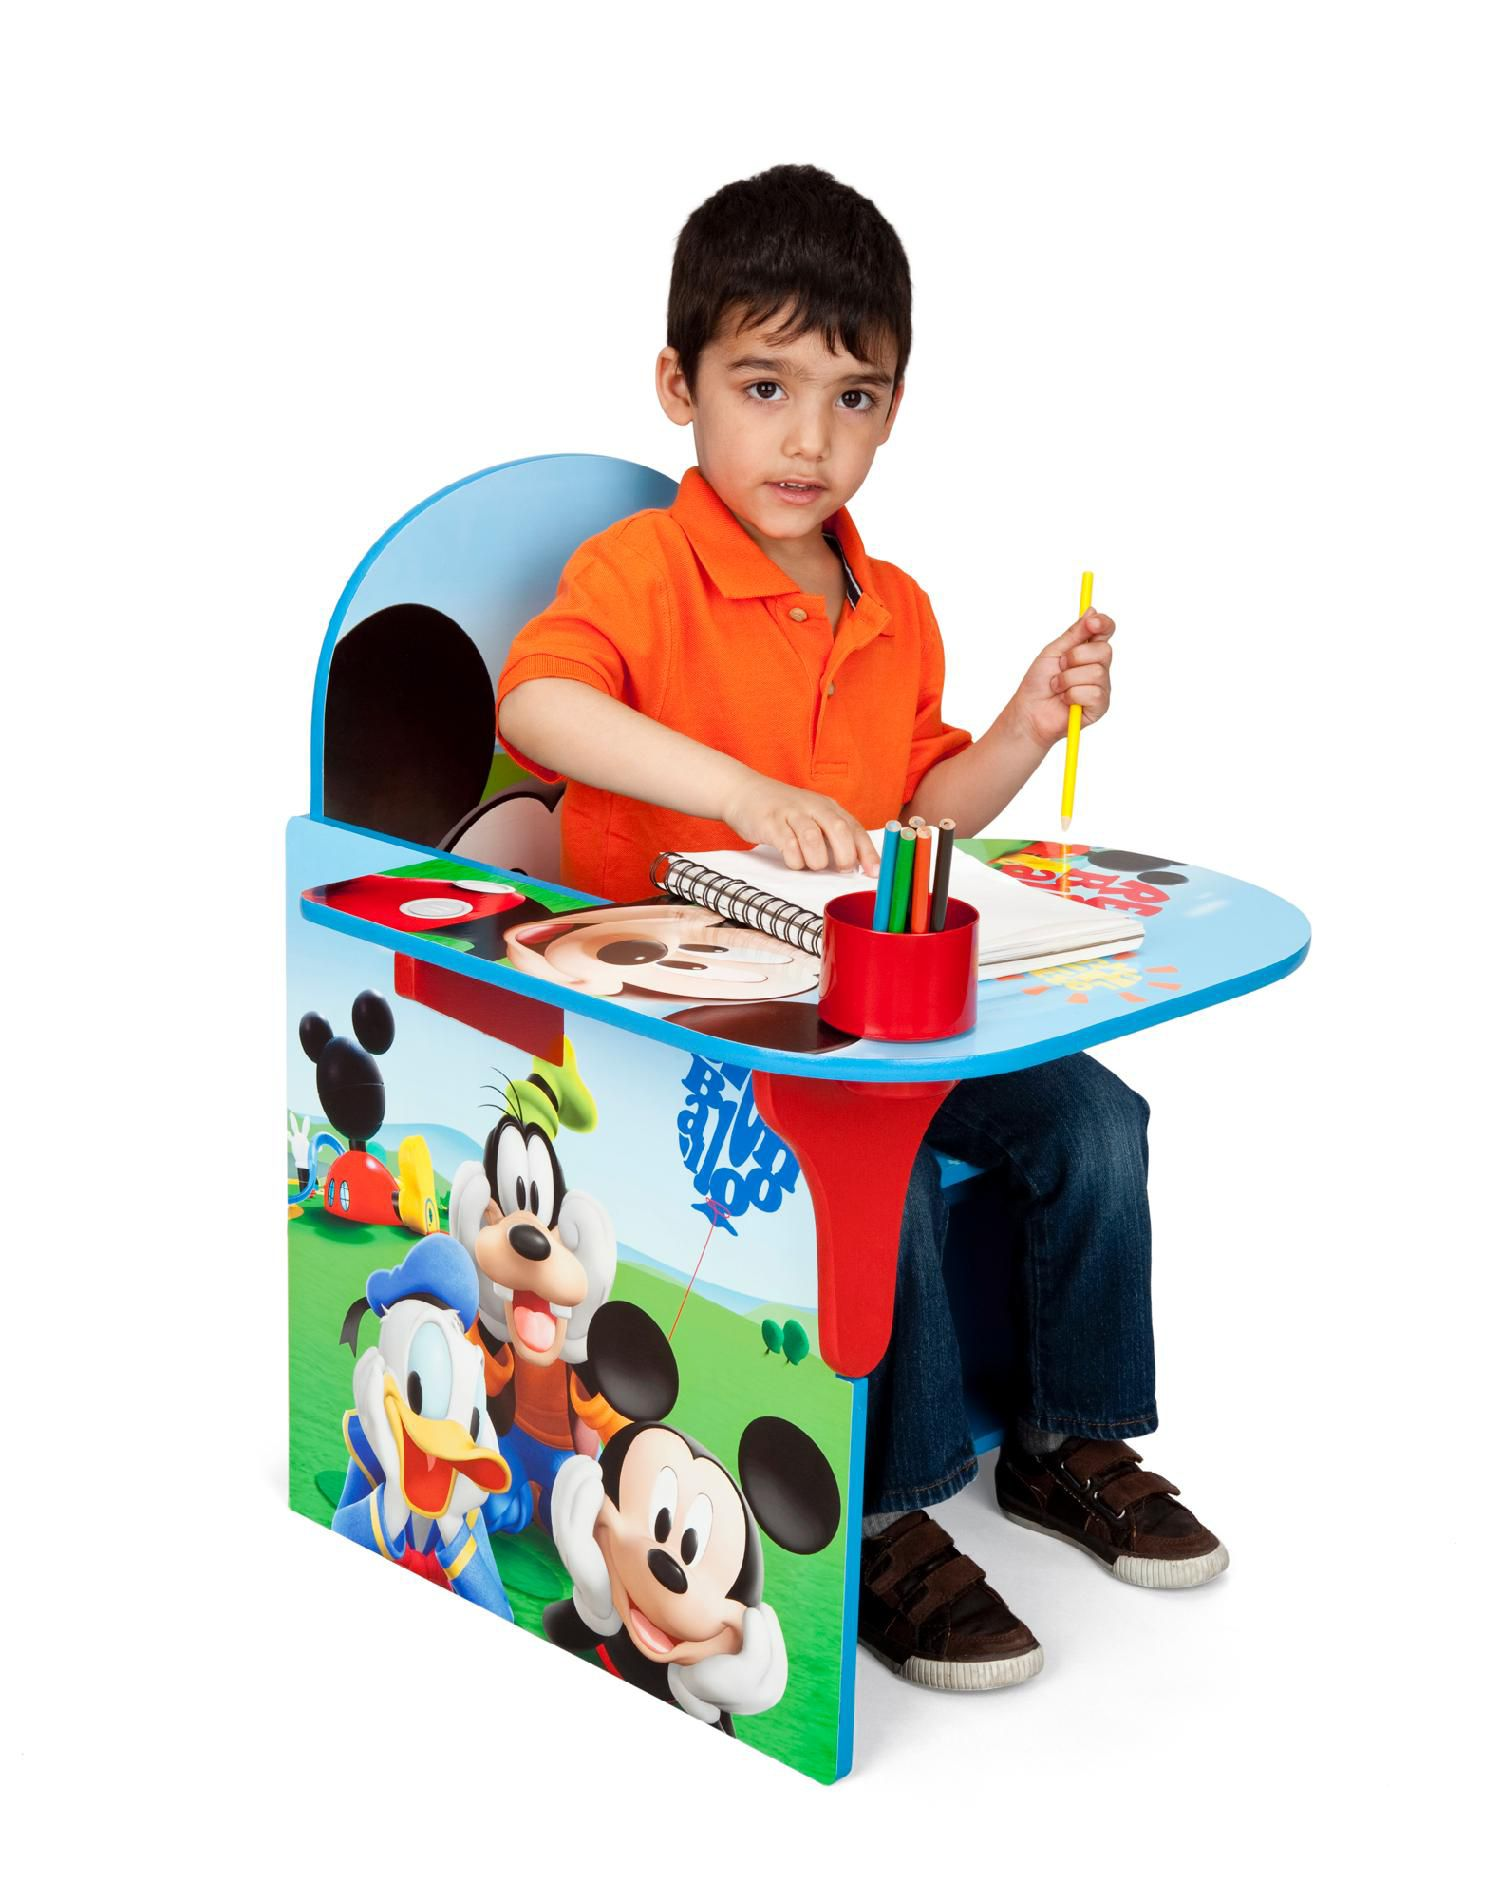 Mickey Mouse Chairs For Toddlers Upc 080213024932 Disney Baby Mickey Mouse Chair Desk Upcitemdb